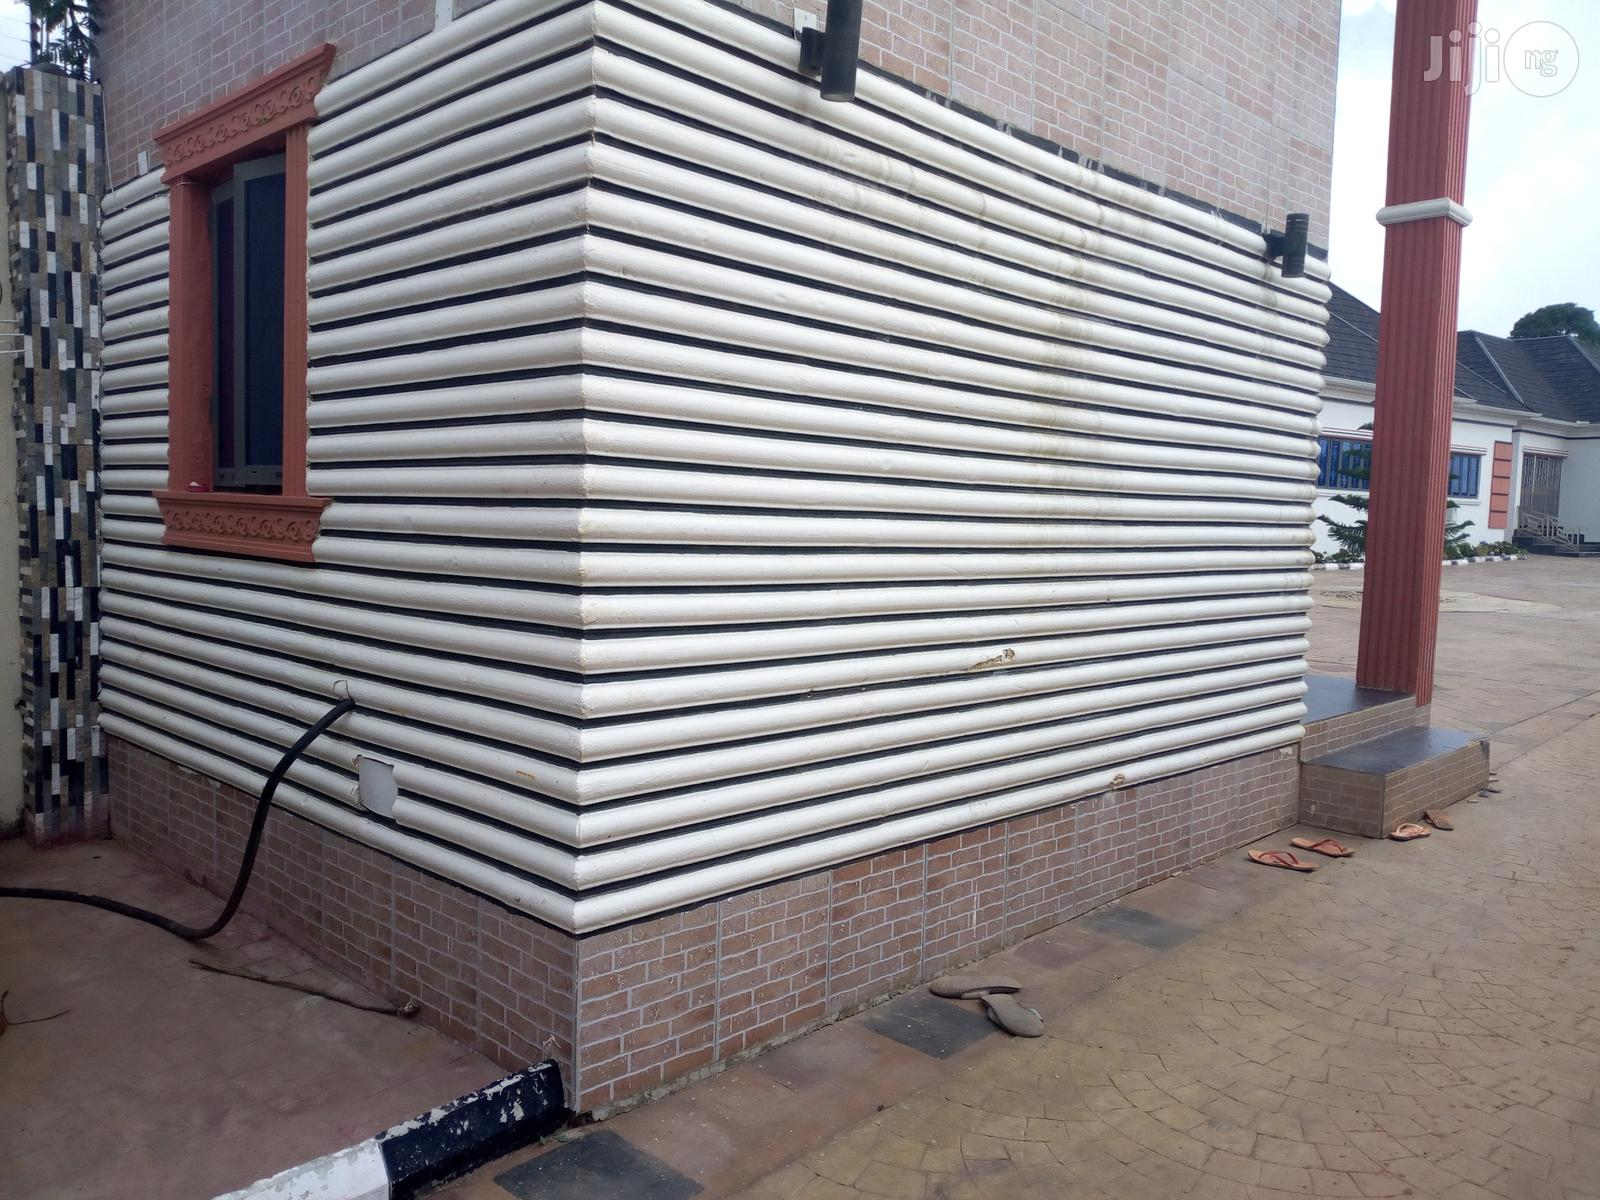 Polystyrene Canopy, Facials, Walls Ceiling's, Piller And Windows Hud